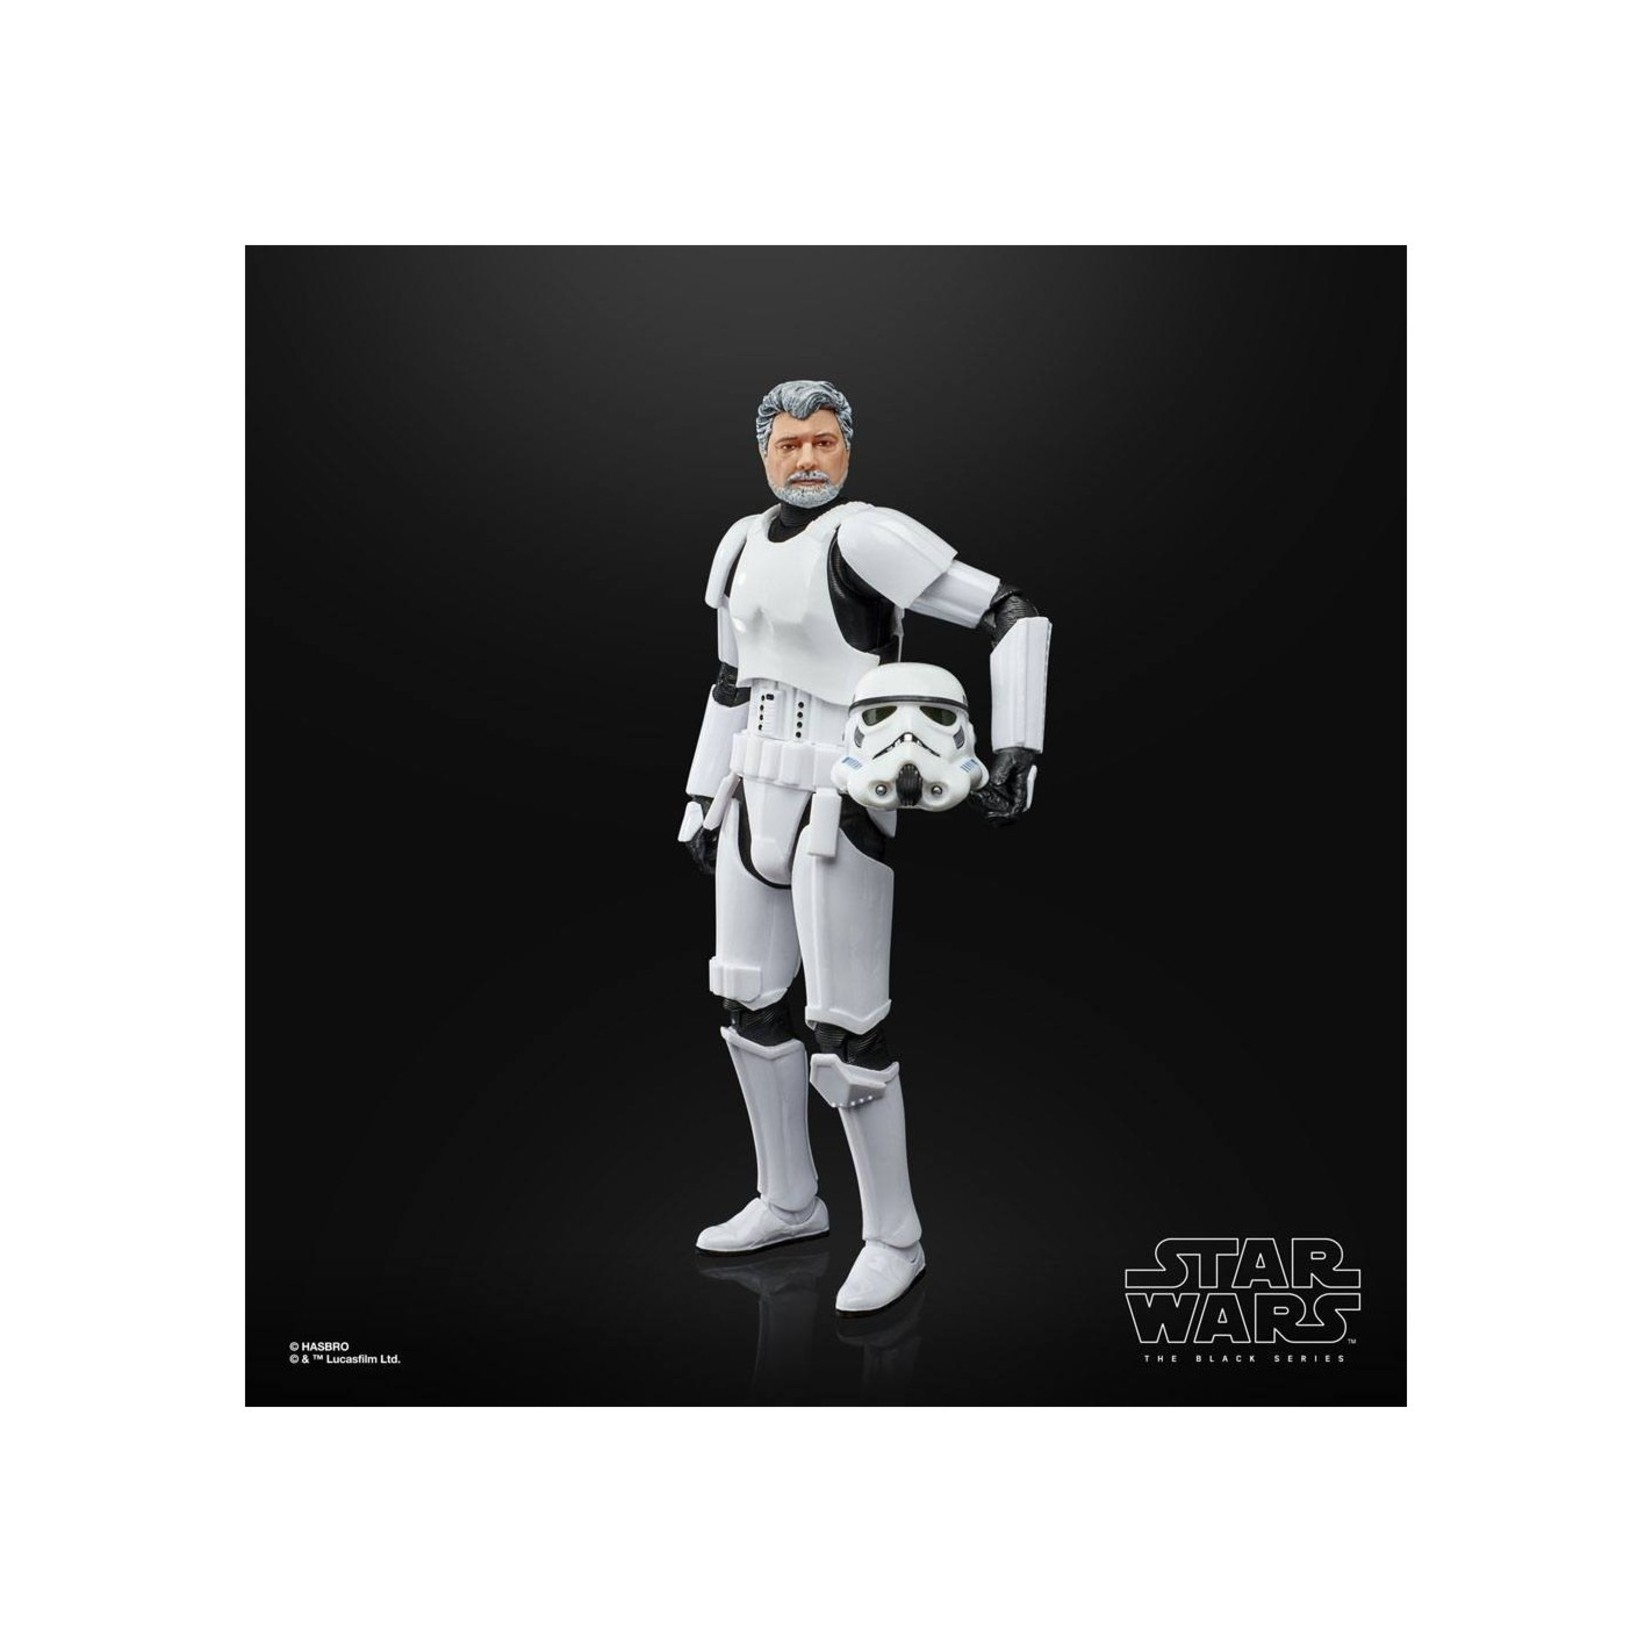 Hasbro [Preorder] Star Wars The Black Series George Lucas (in Stormtrooper Disguise) 6-Inch Action Figure